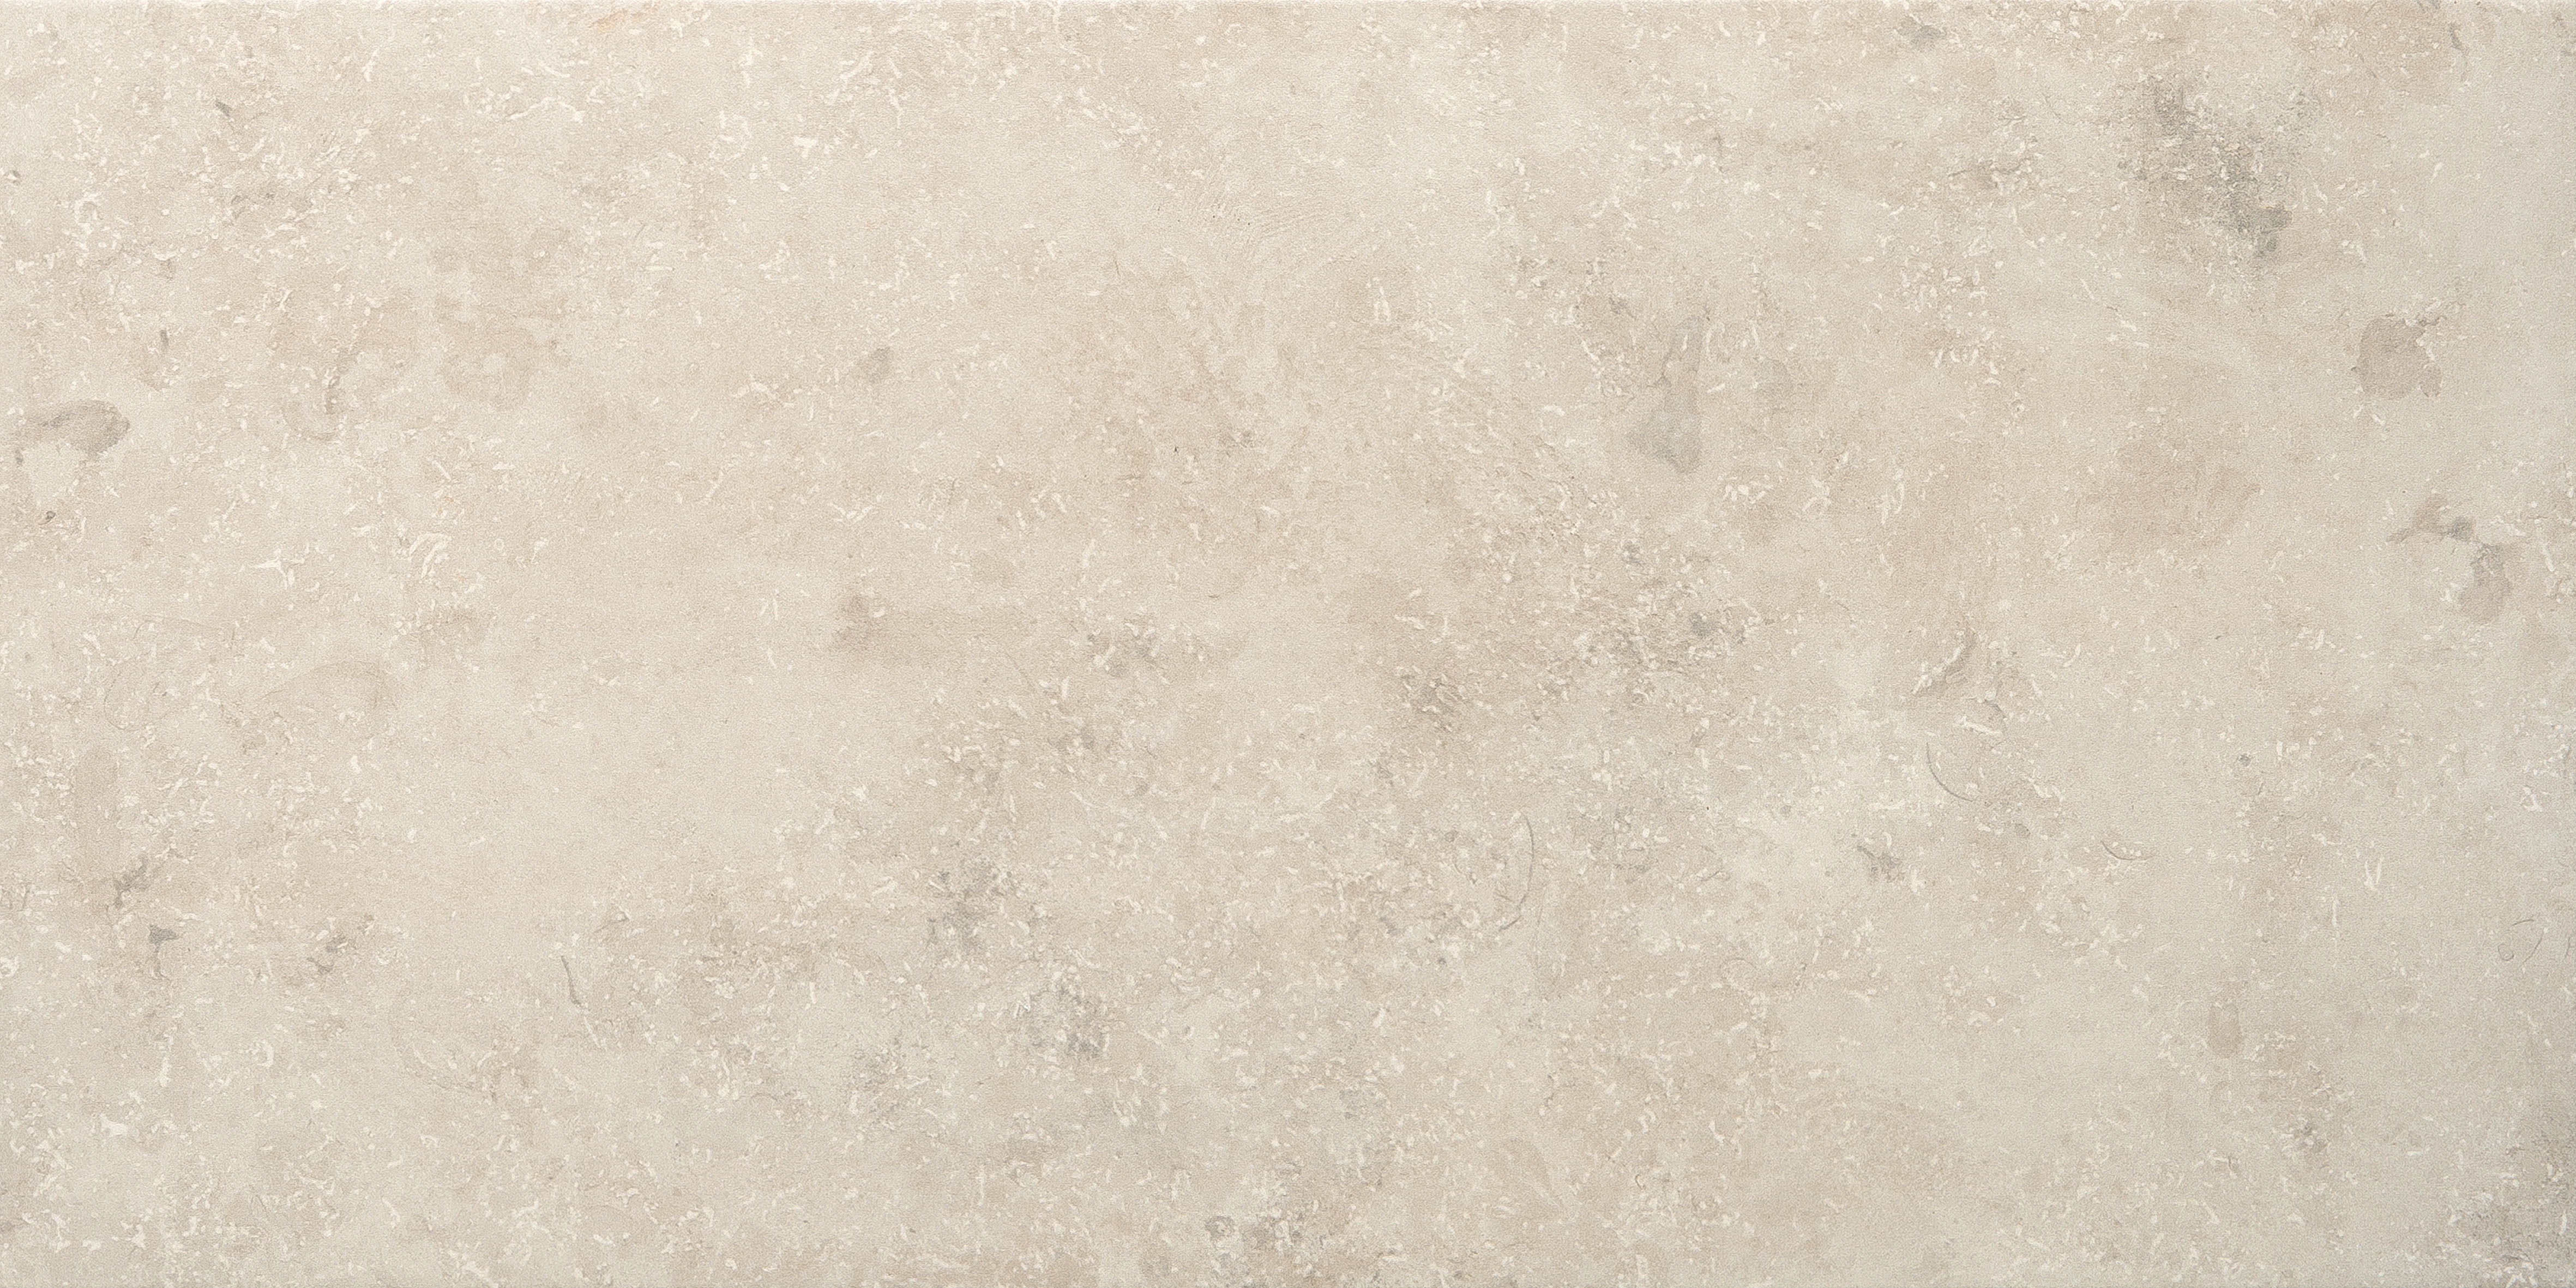 Azulev Fossil Stone Blanco Porcelain Wall & Floor Tiles (600x300mm)